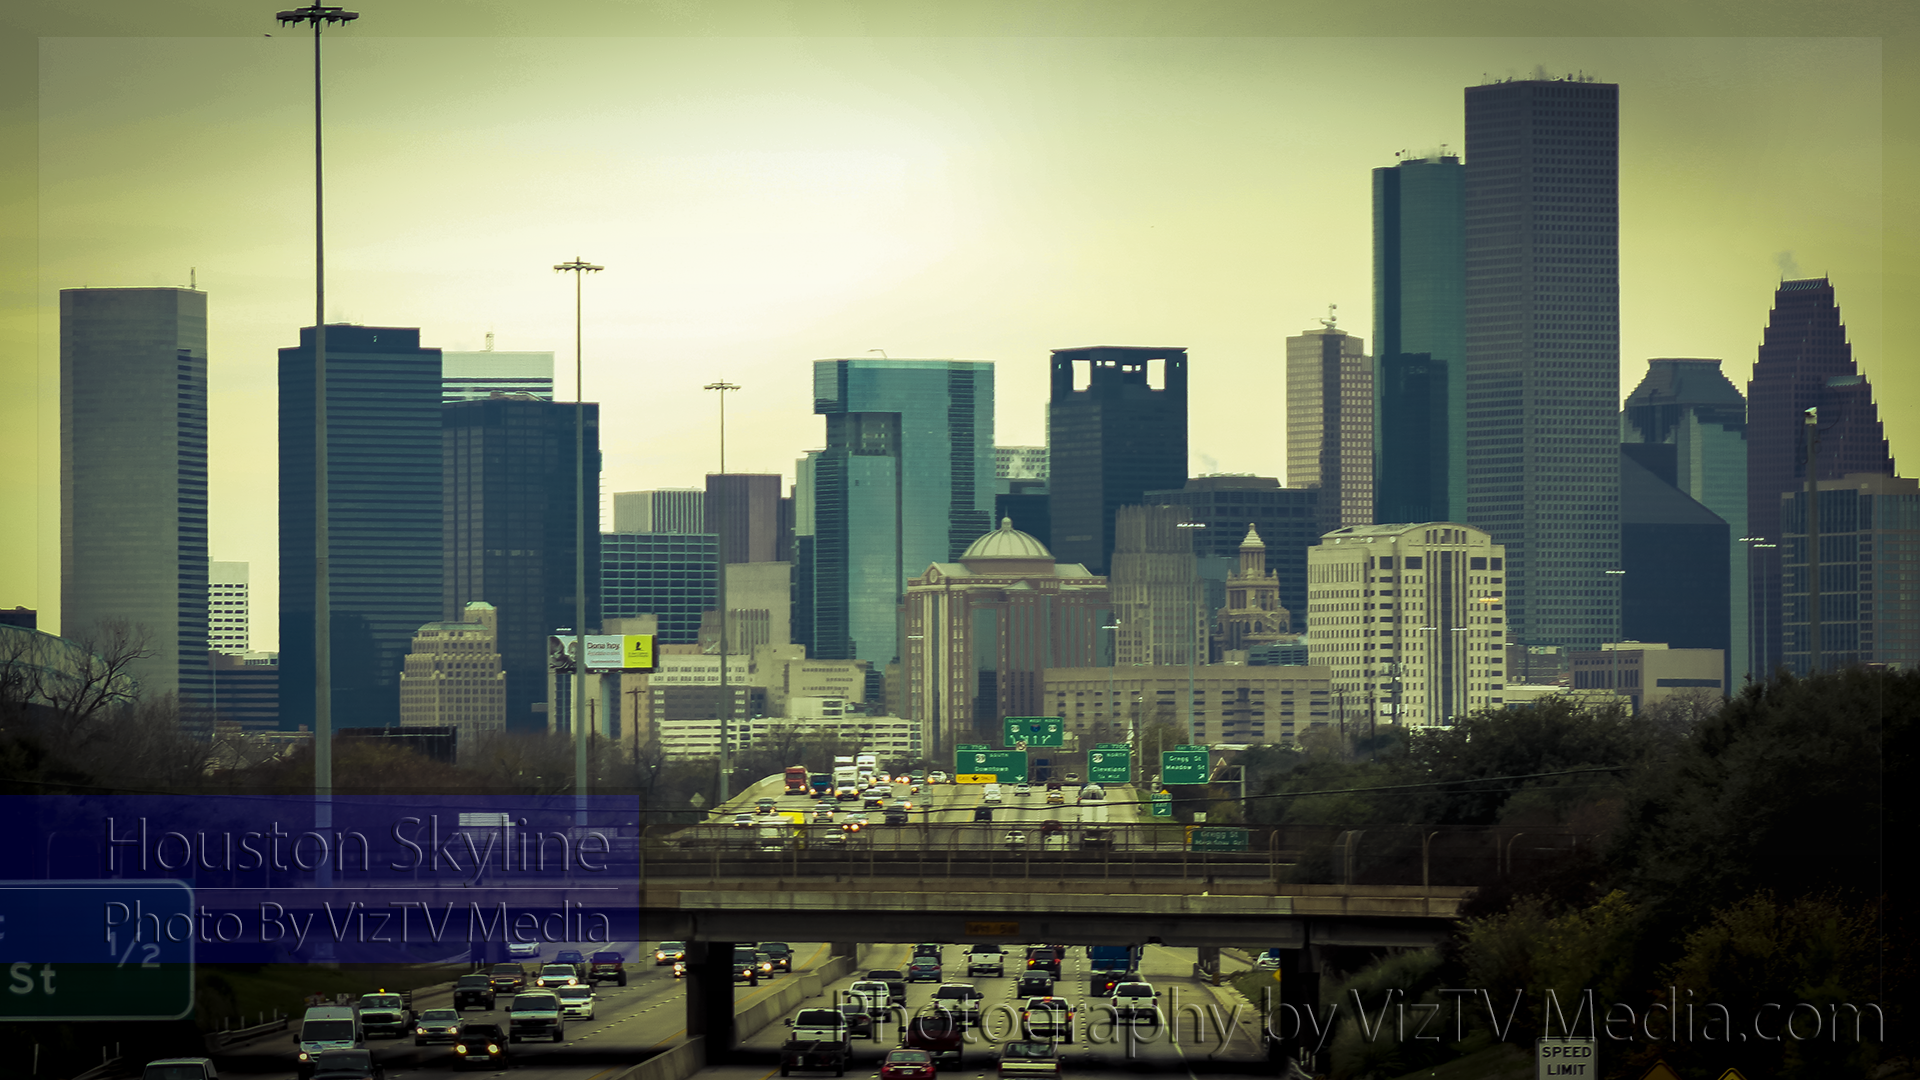 Photo: Houston Skyline - Desktop Background Wallpaper | VizTV